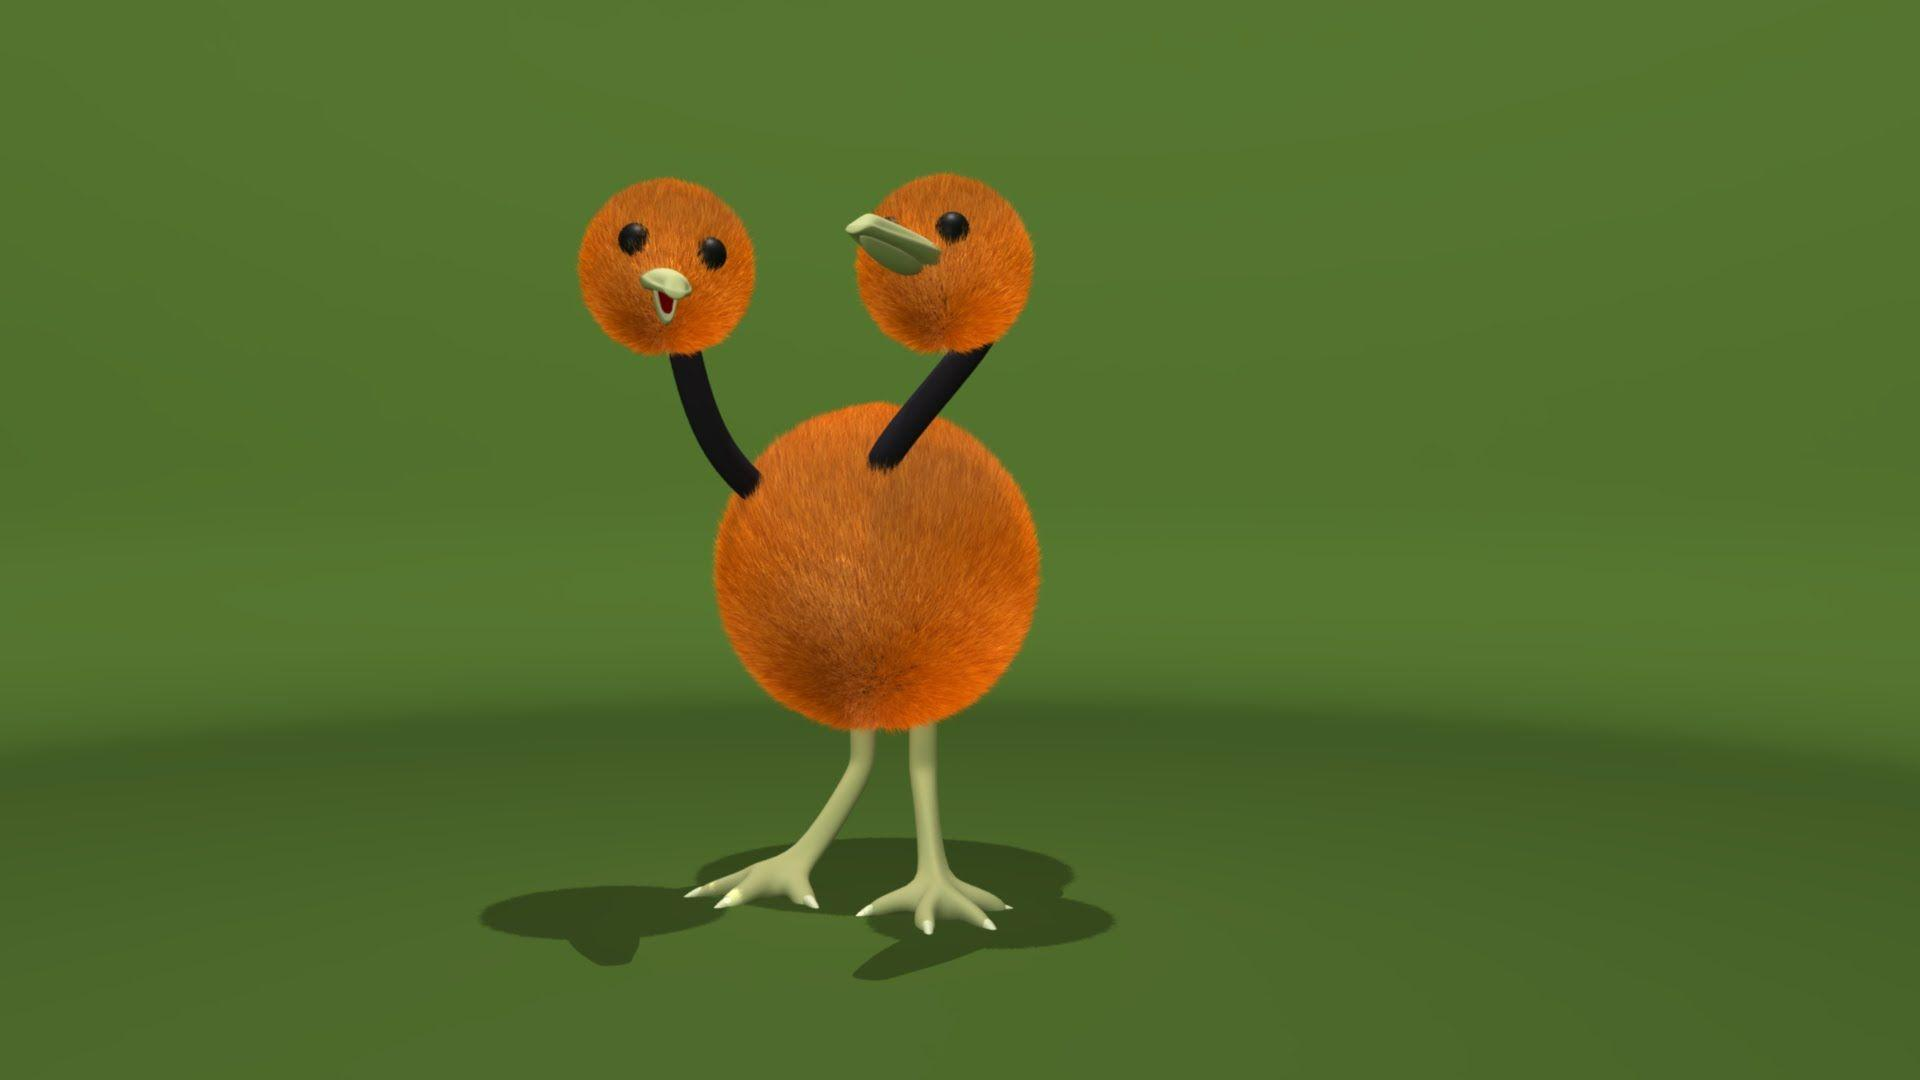 Pokemon Red and Blue: Doduo 3D Model (Speed Modeling 01) - YouTube